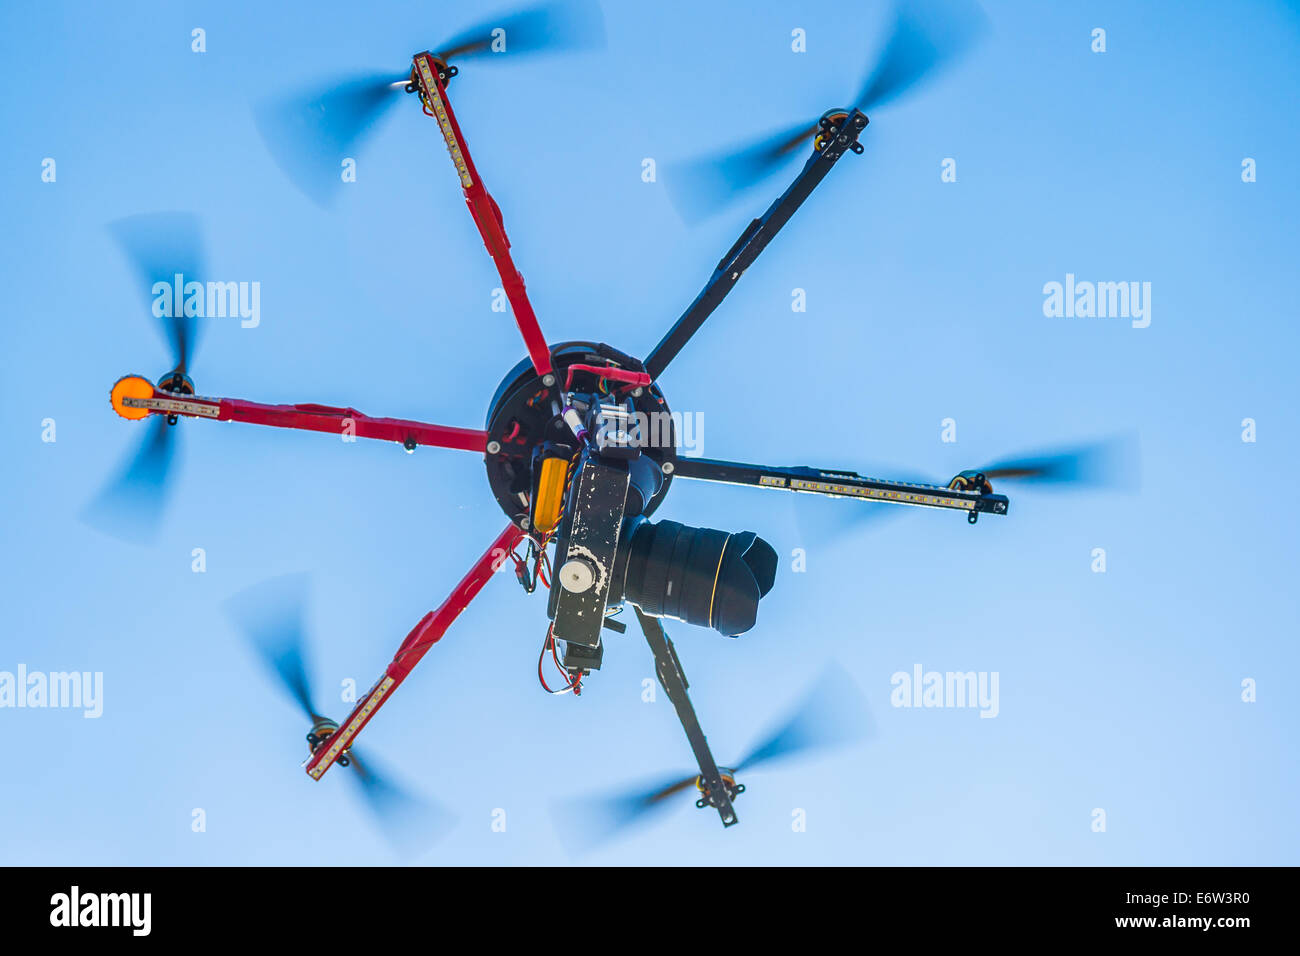 Closeup view of a hexacopter with photo camera attached in flight - Stock Image